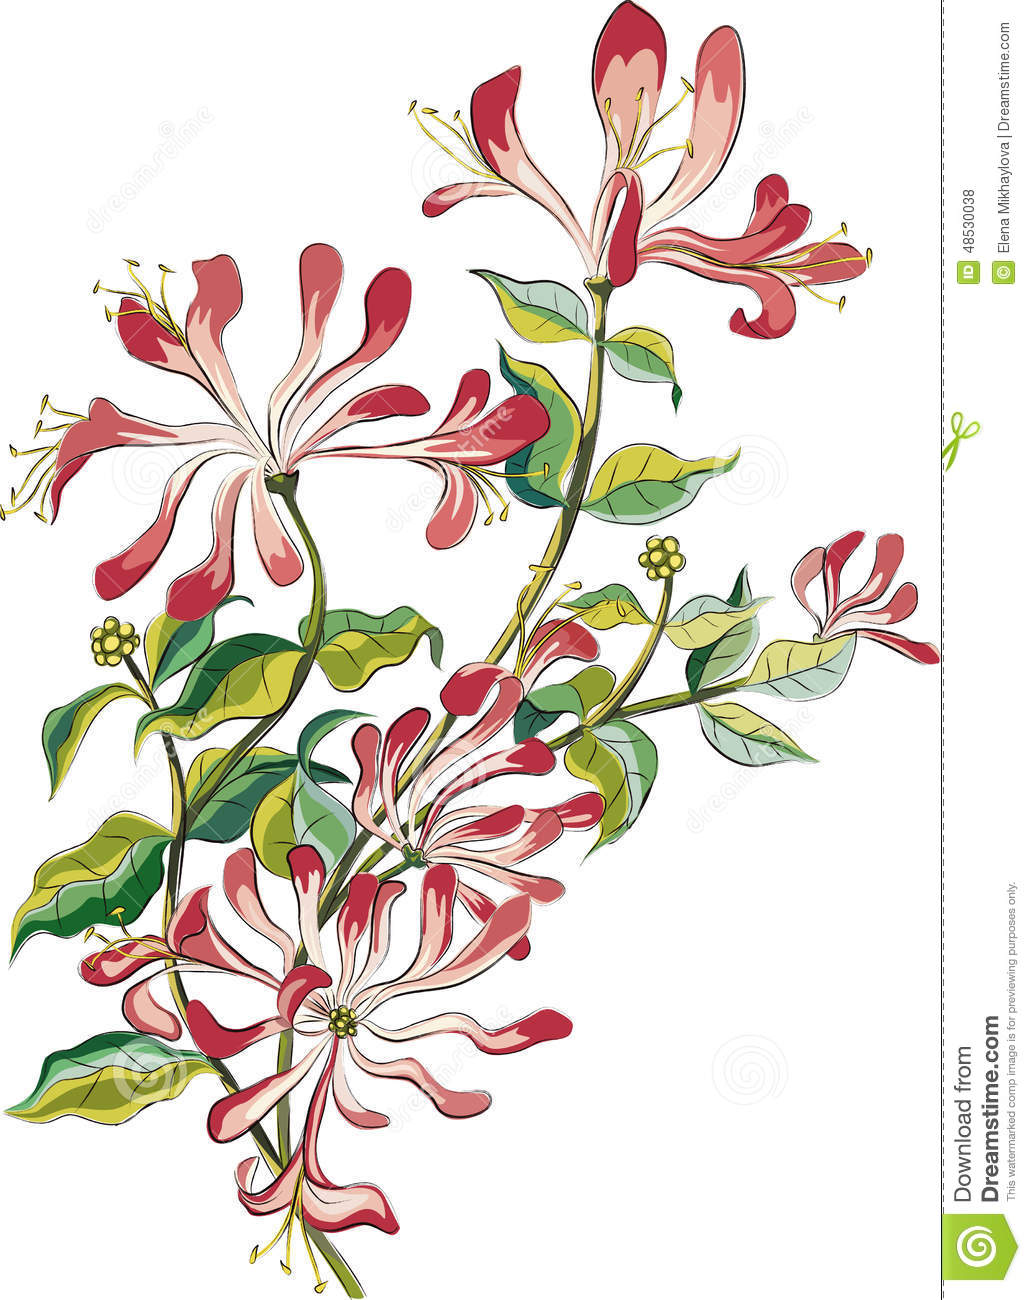 Honeysuckle Flower Line Drawing : Honeysuckle stock vector illustration of colorful pink